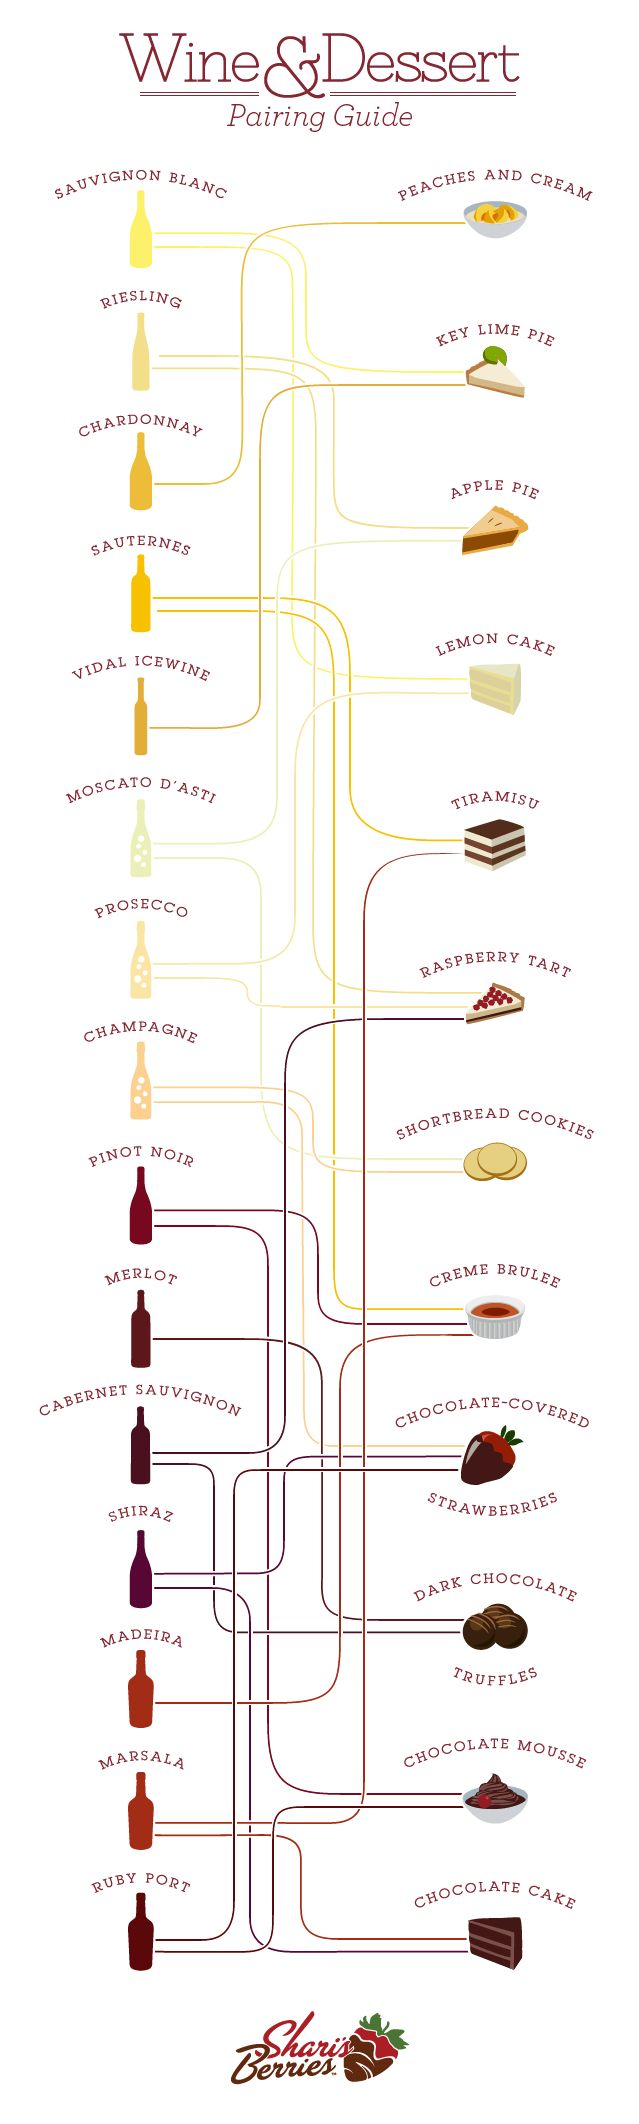 #winepairings